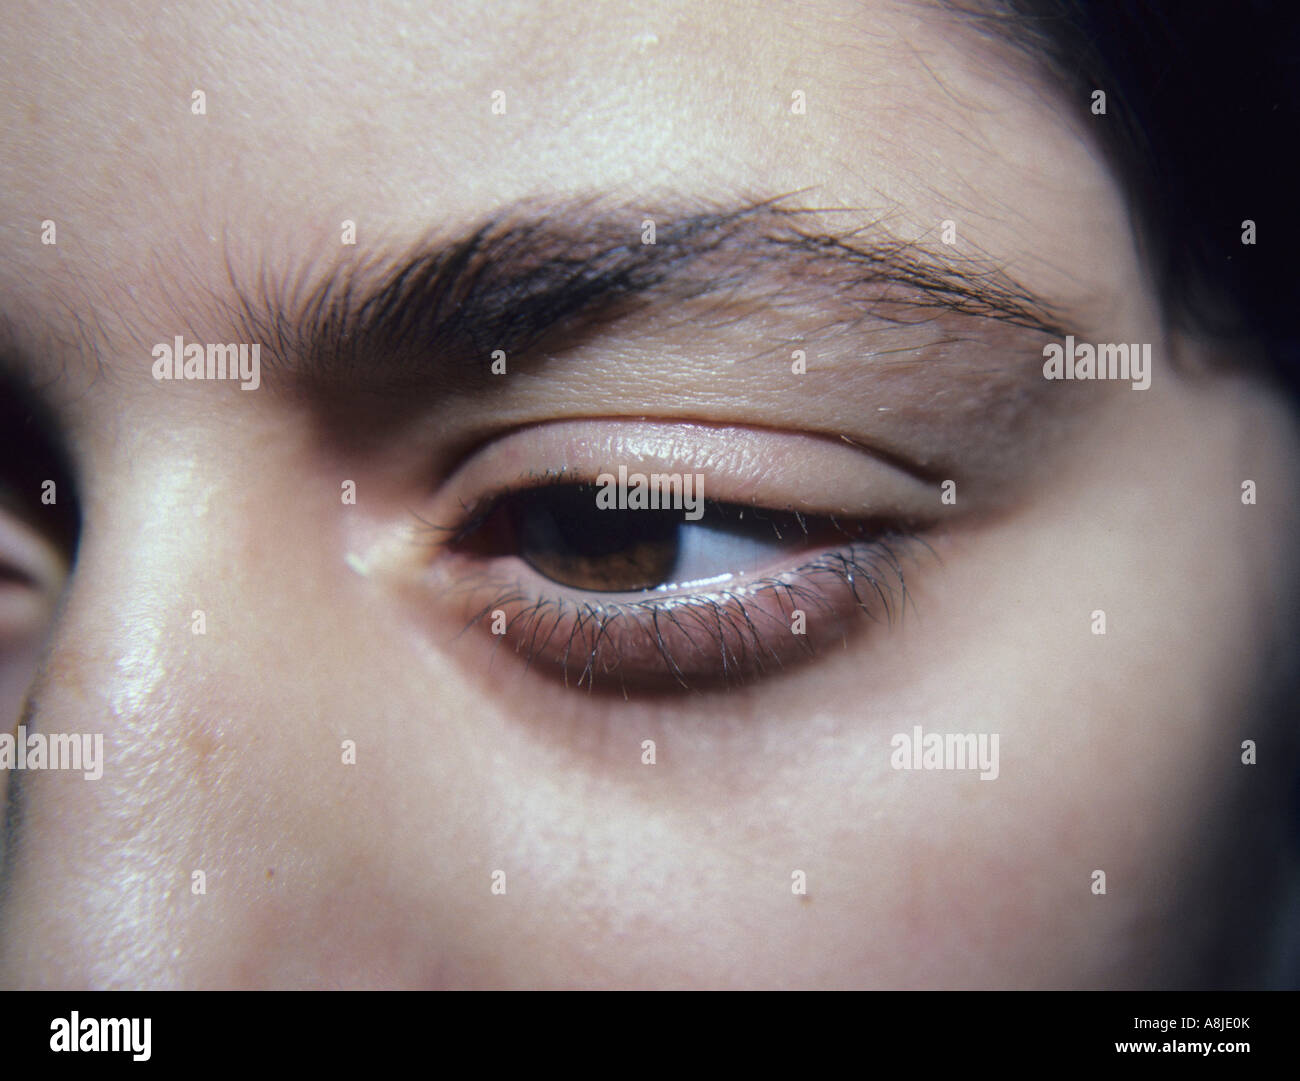 Eyebrow Alopecia Stock Photos Eyebrow Alopecia Stock Images Alamy